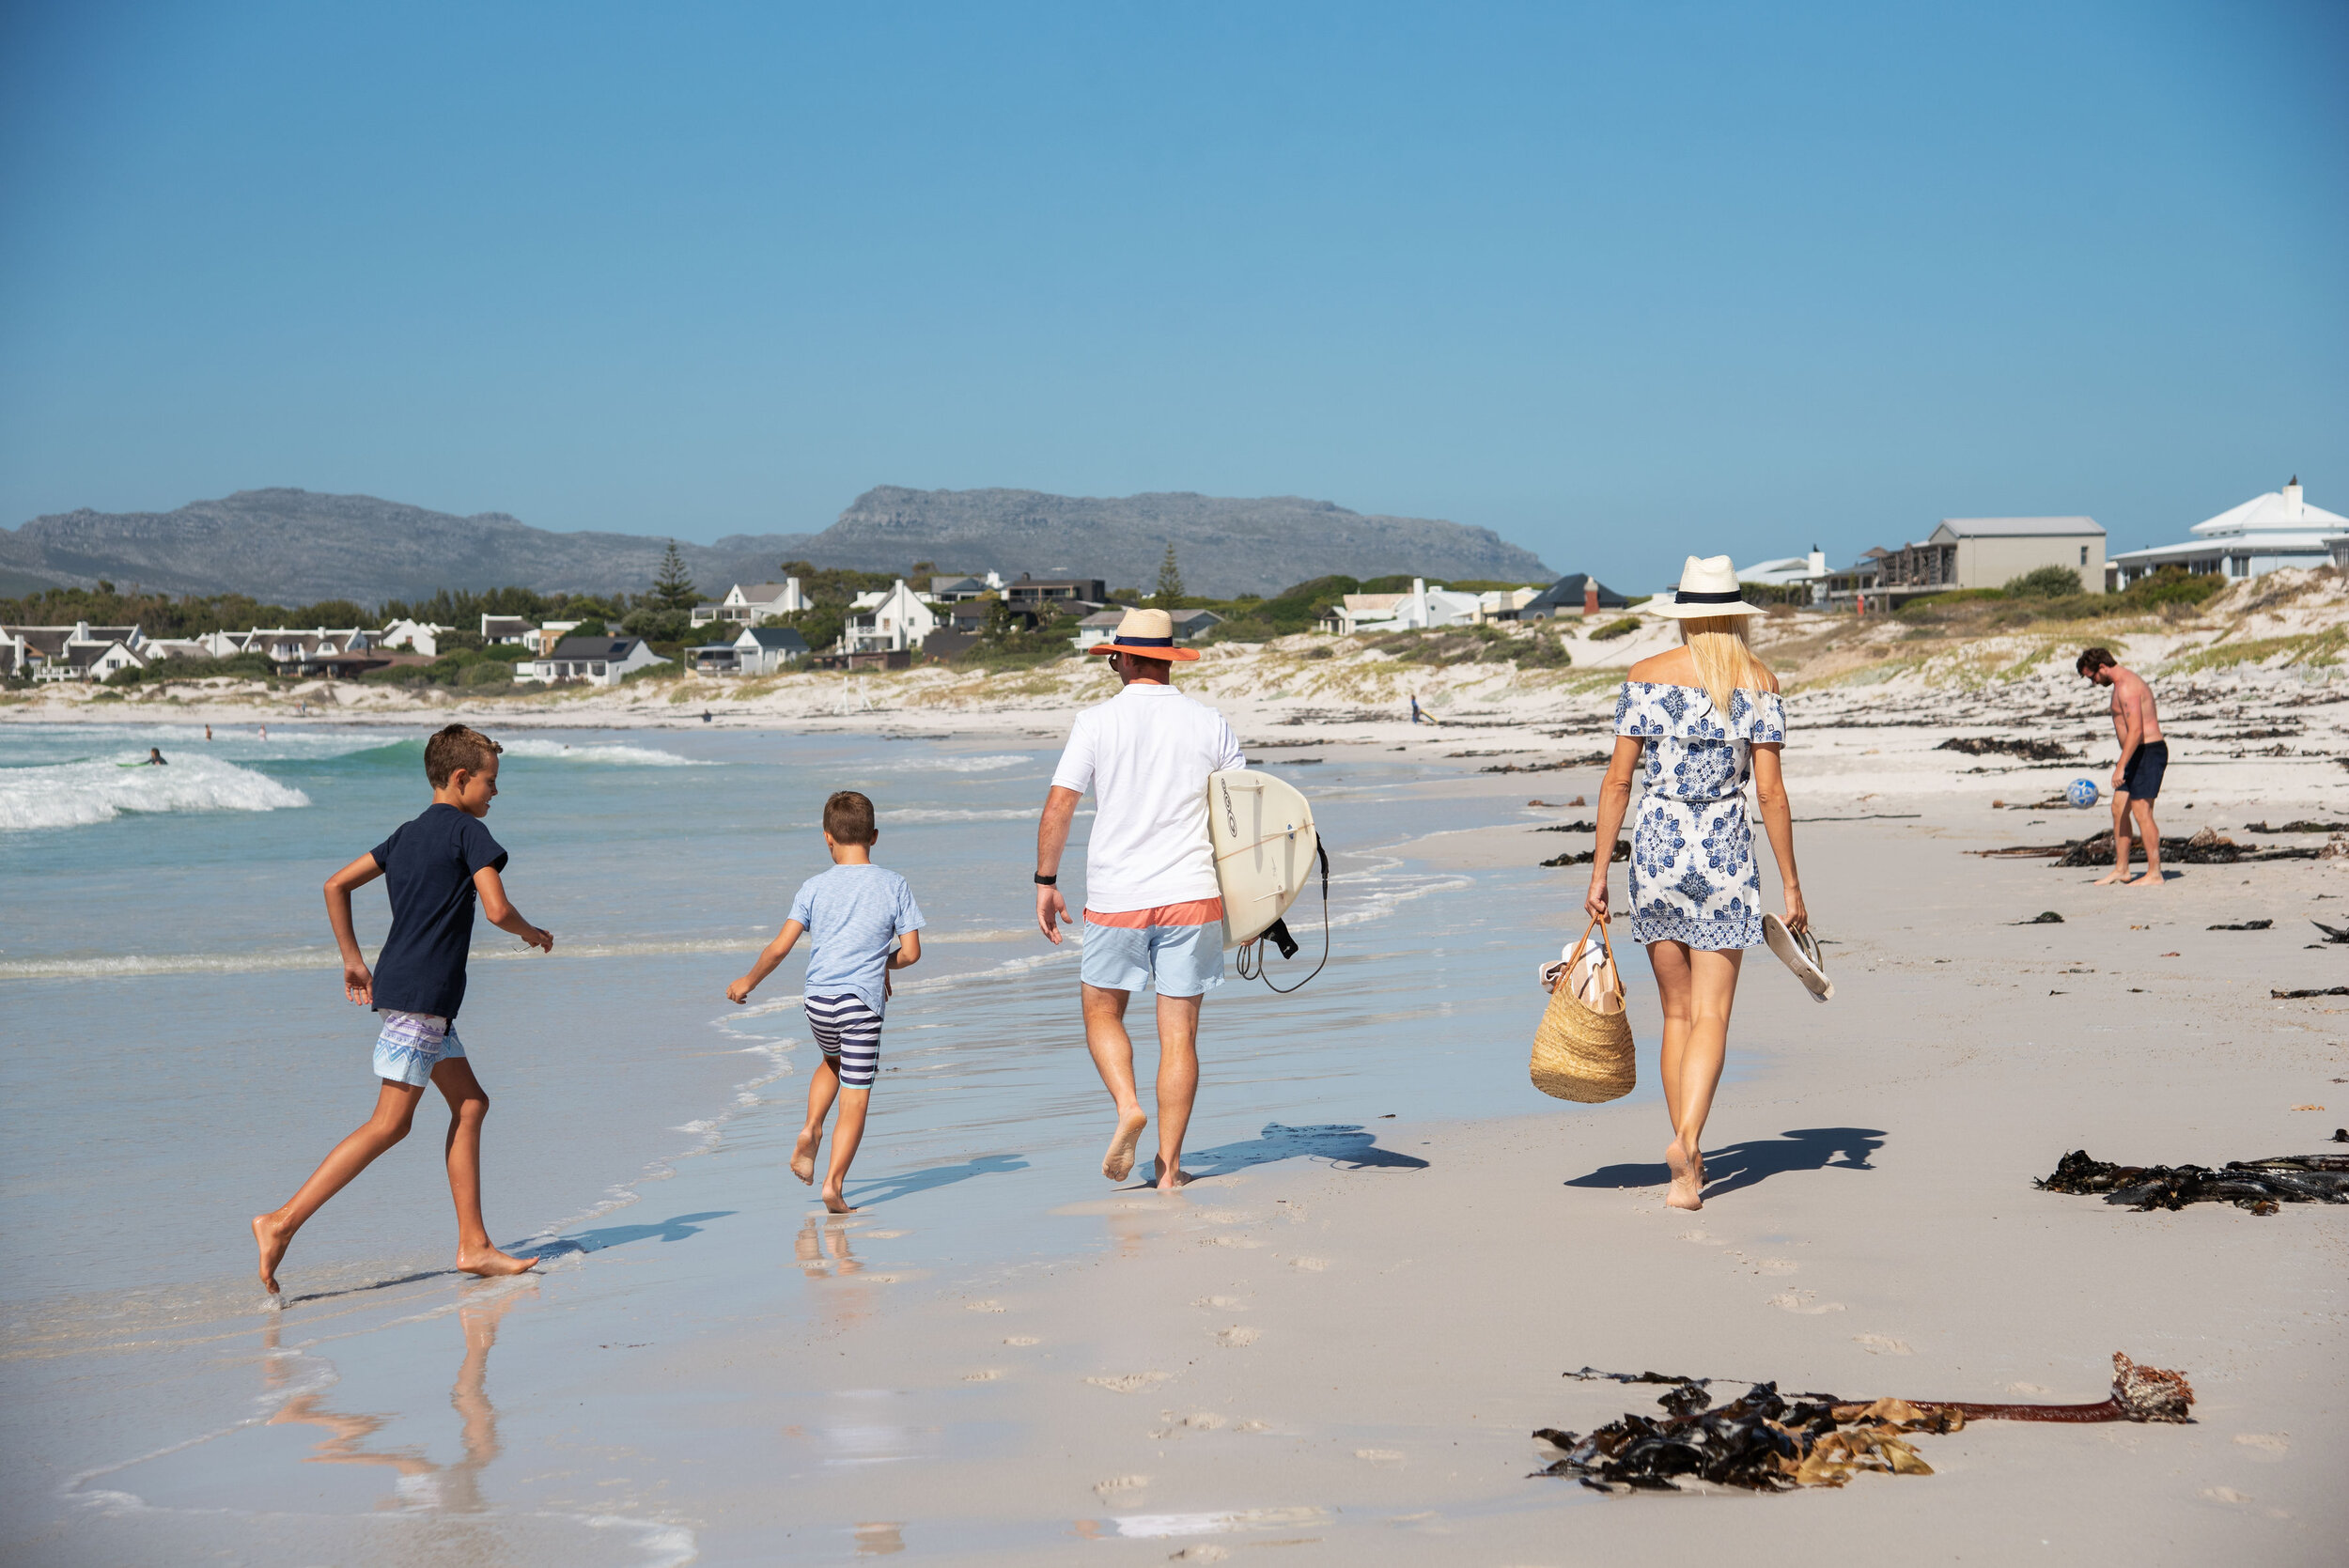 Cape Town is known for its beautiful beaches, pictured here is Long Beach in Kommetjie.